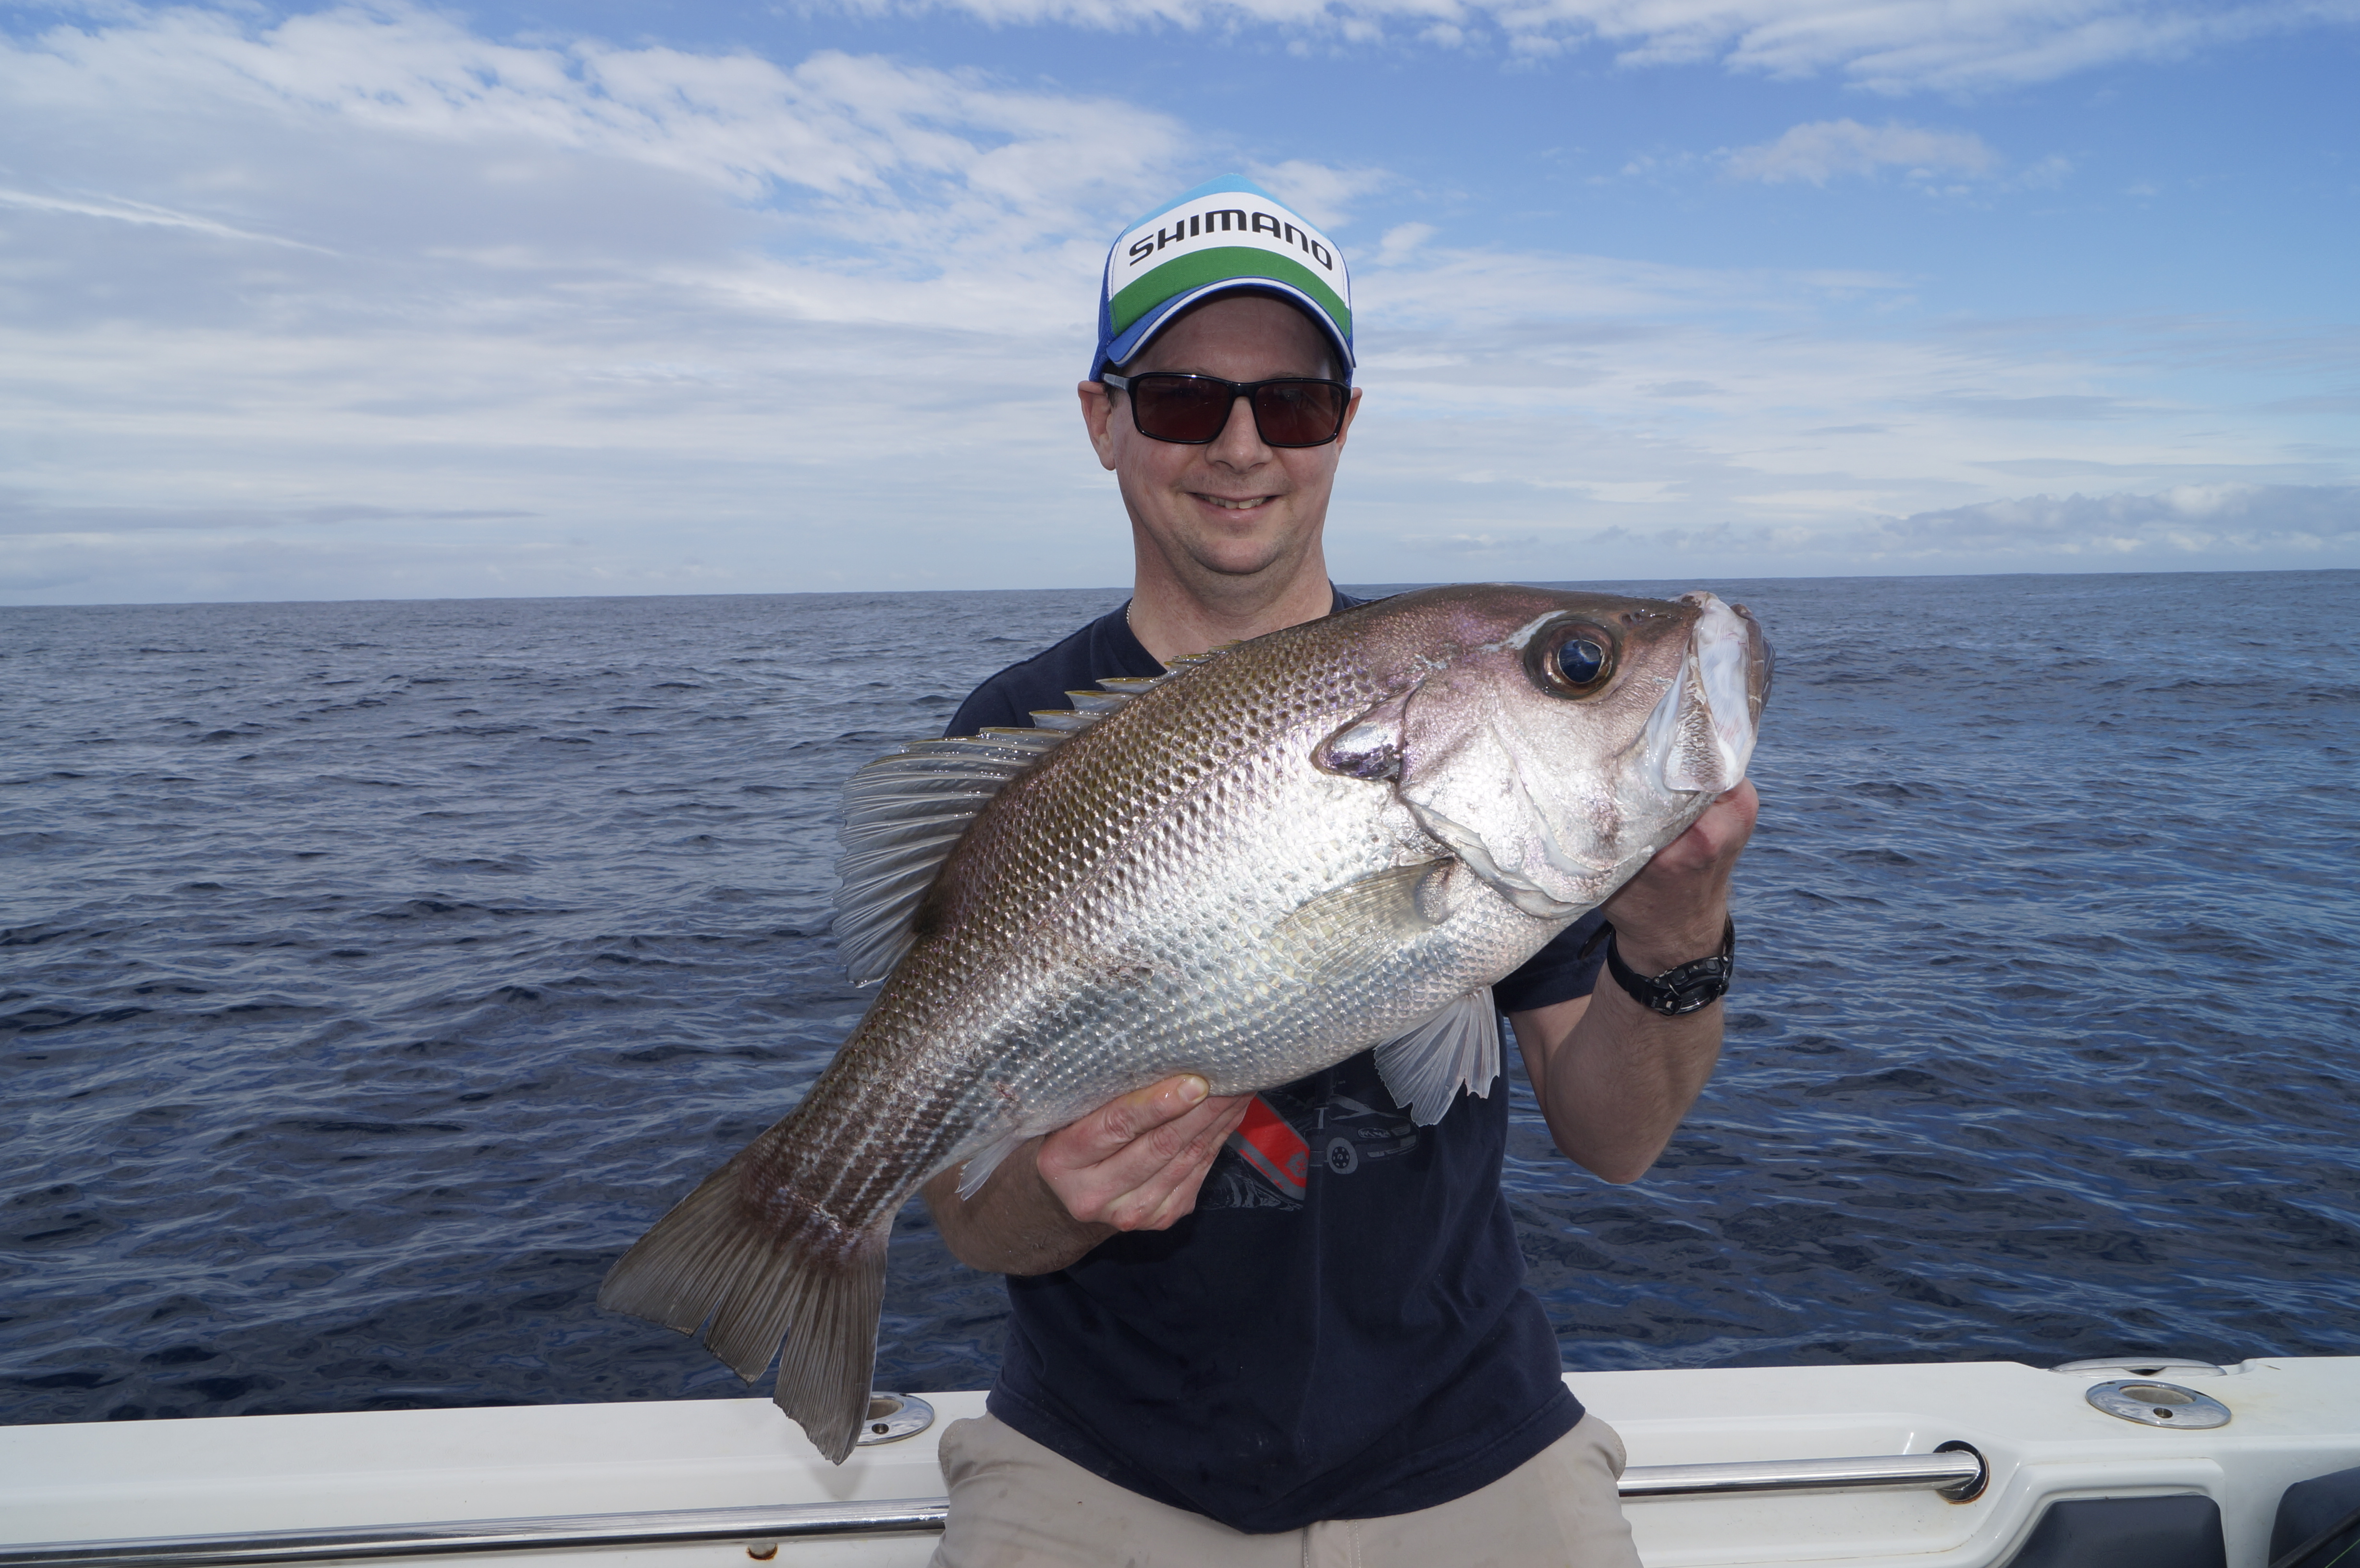 Scott Essery dug deep to land this 62cm pearl perch.